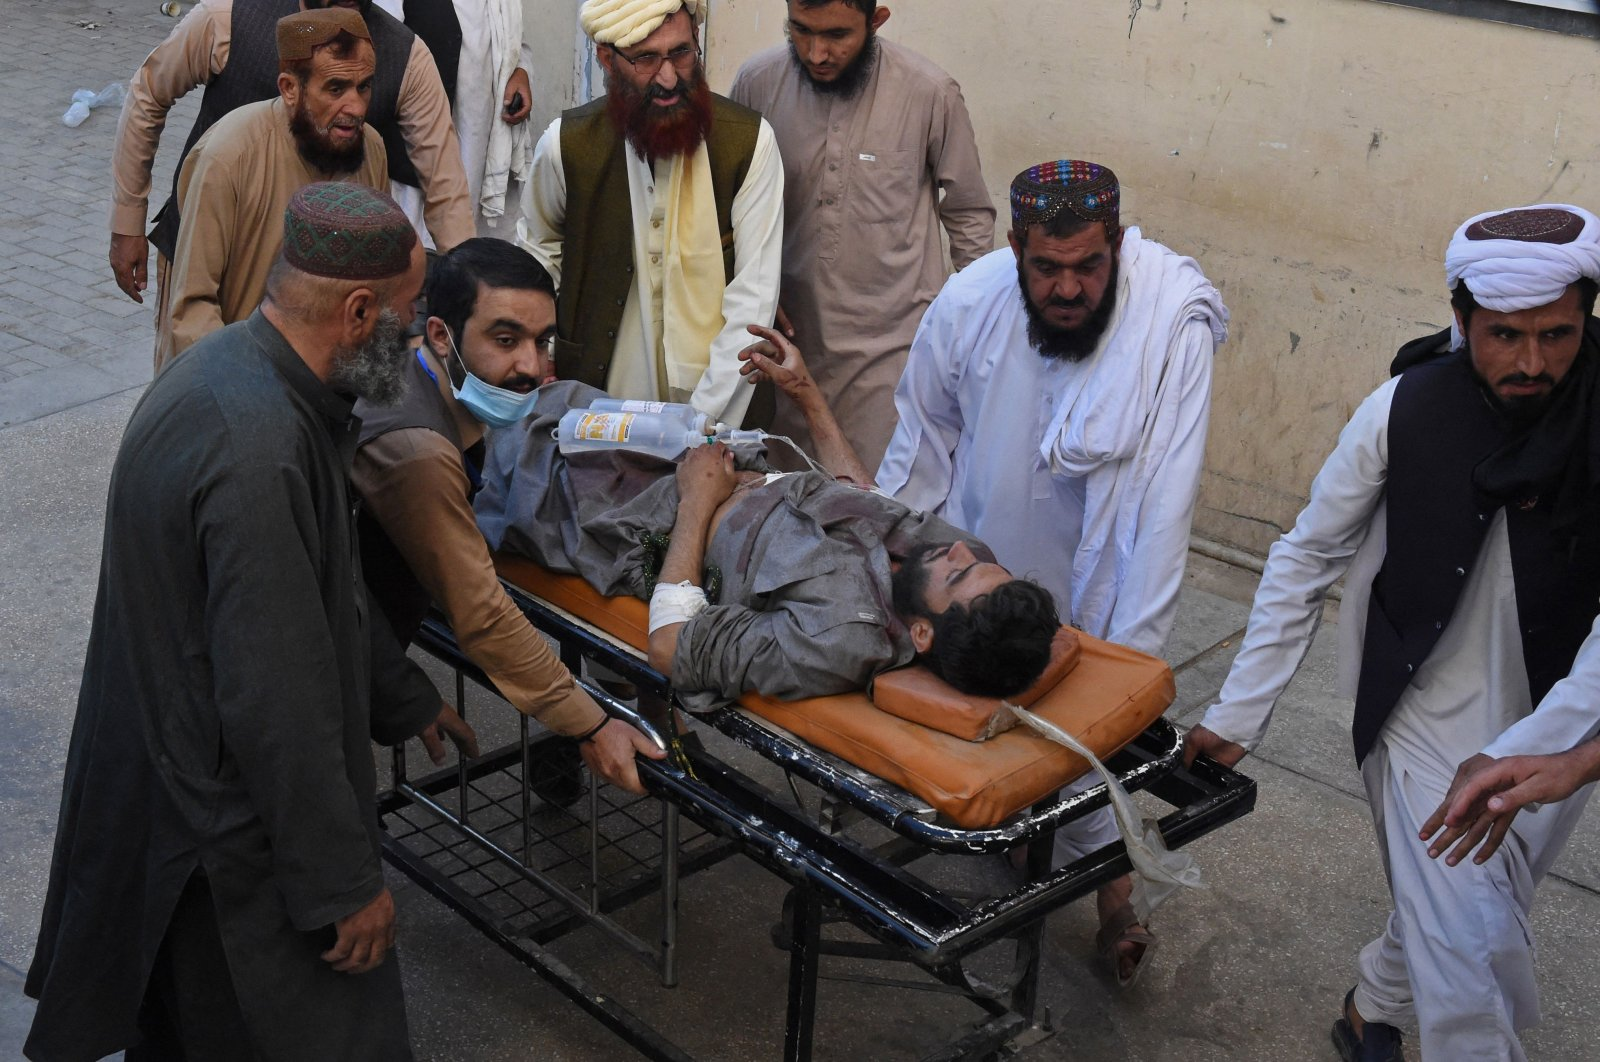 People push a stretcher carrying a victim who was injured in a bomb blast during a pro-Palestinian rally in which six people were killed and another 14 wounded, in Chaman, Balochistan province near the Afghanistan border, Pakistan, May 21, 2021. (AFP Photo)